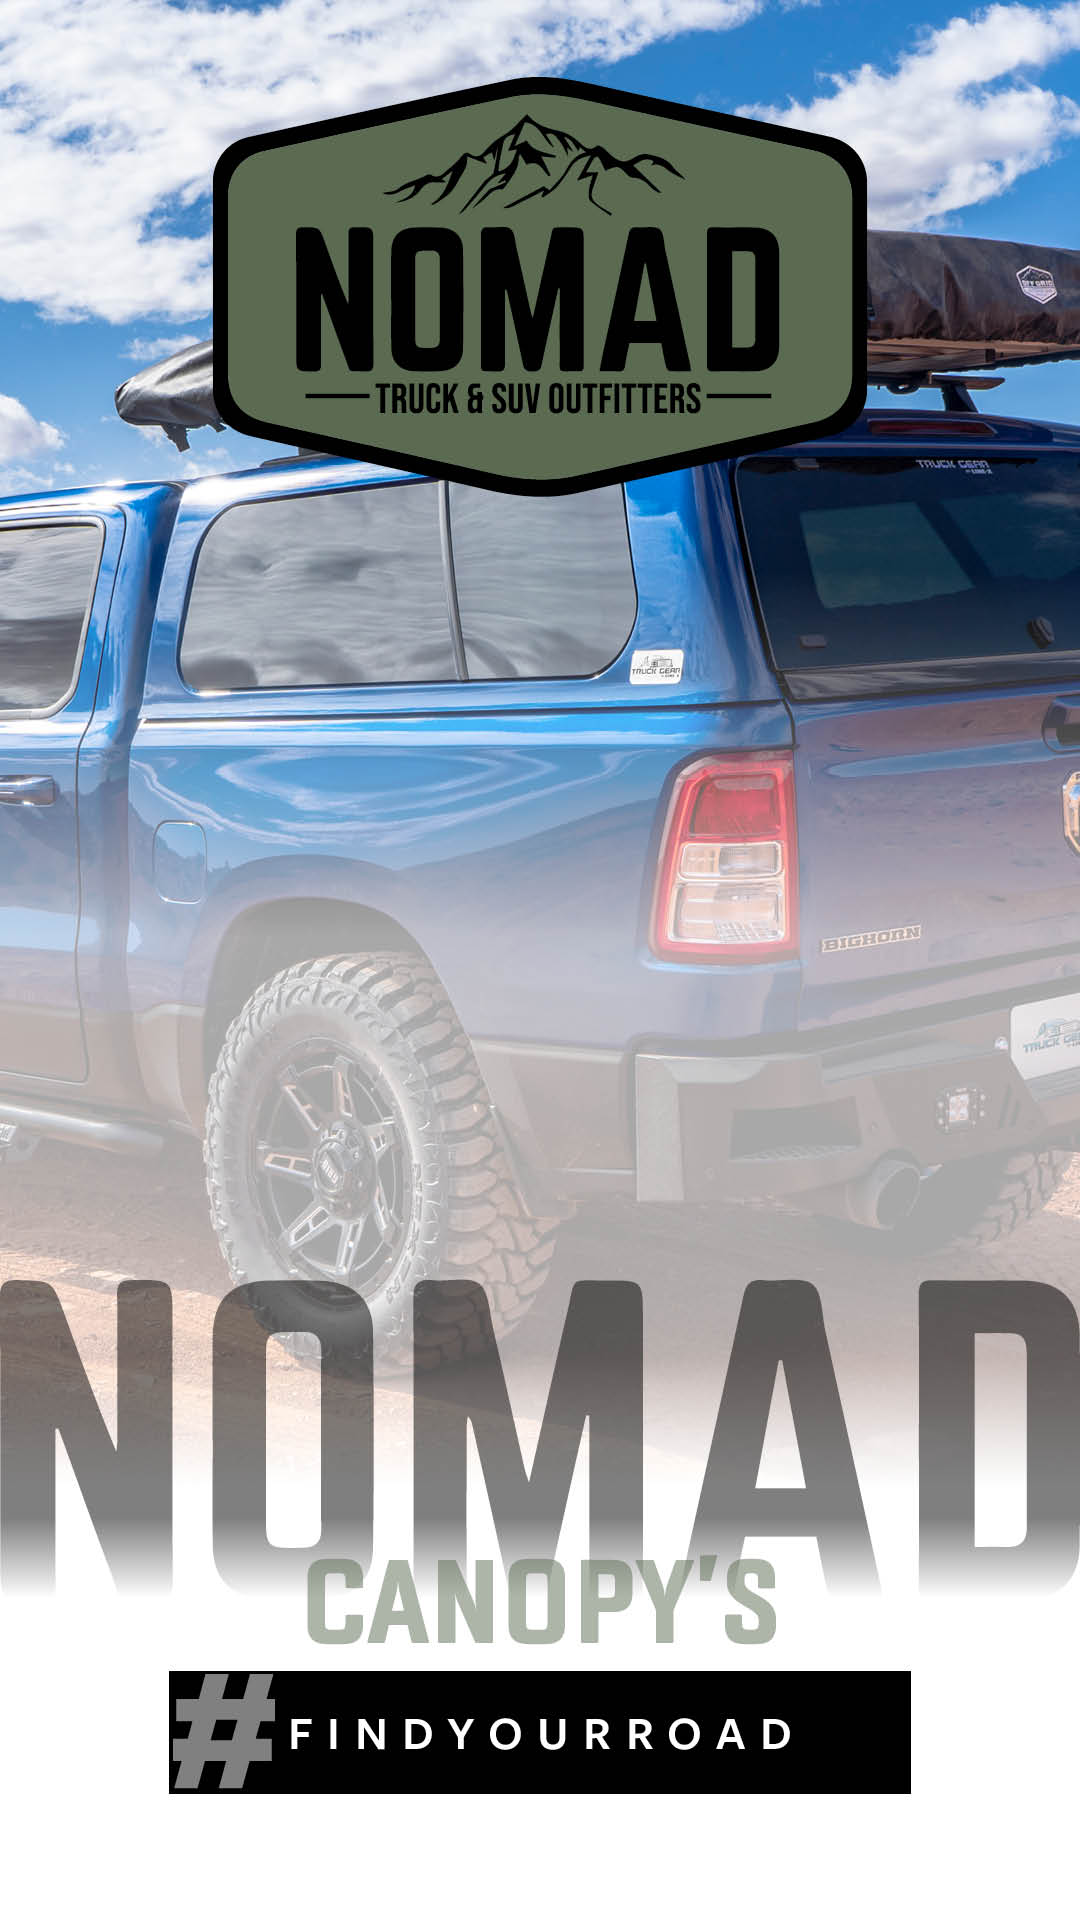 NOMAD_Canopy2